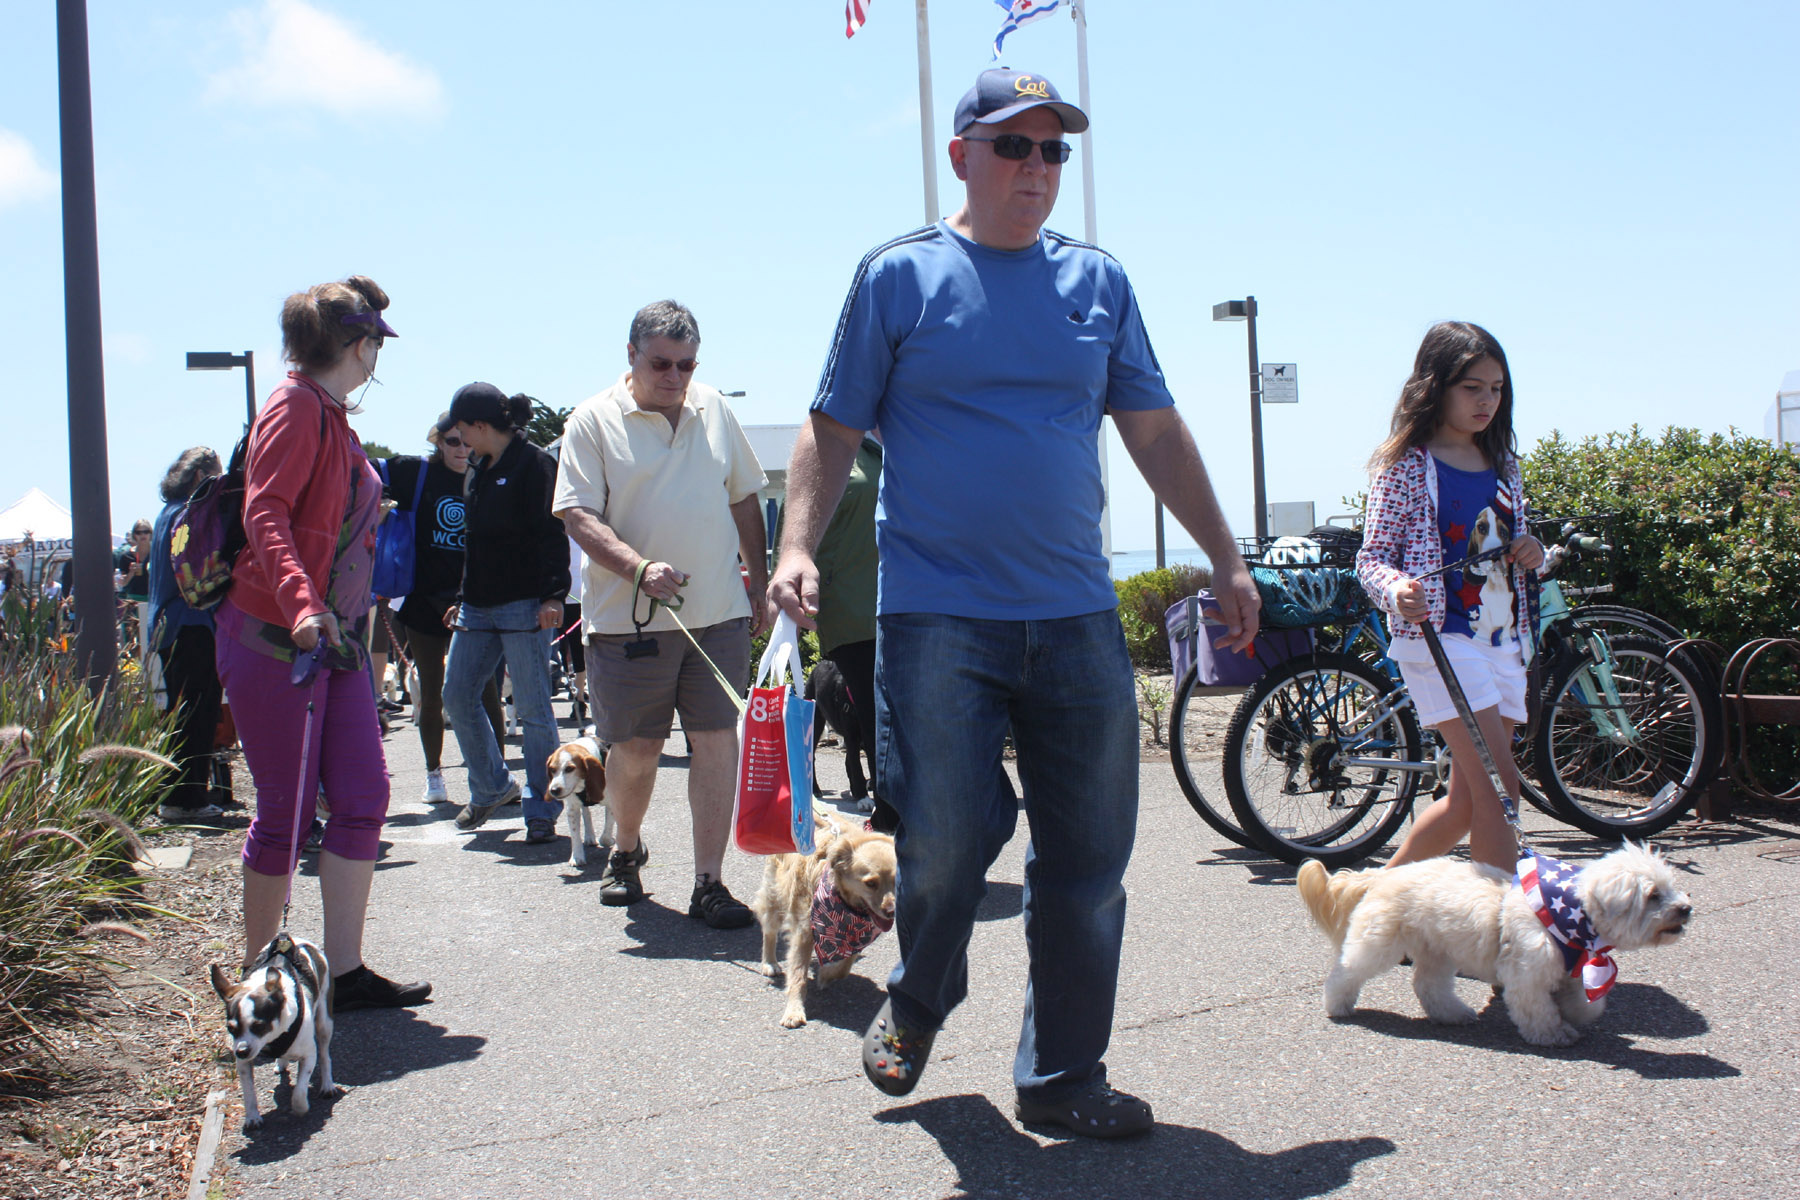 Participants in the 2013 Wiggle Waggle Walk. Photo by Dennis Evanosky